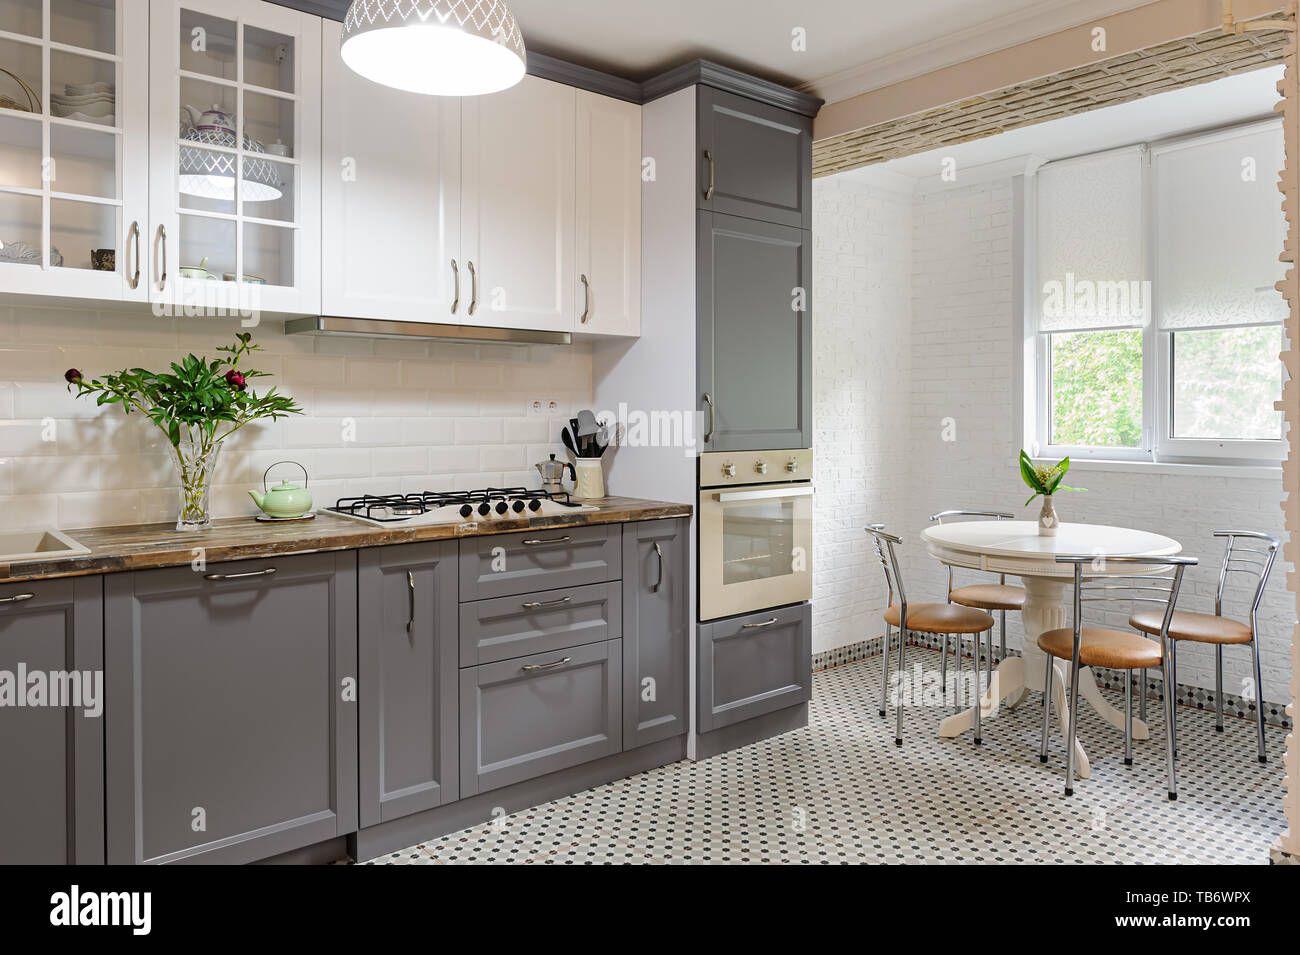 Modern Grey And White Wooden Kitchen Interior Stock Photo Alamy